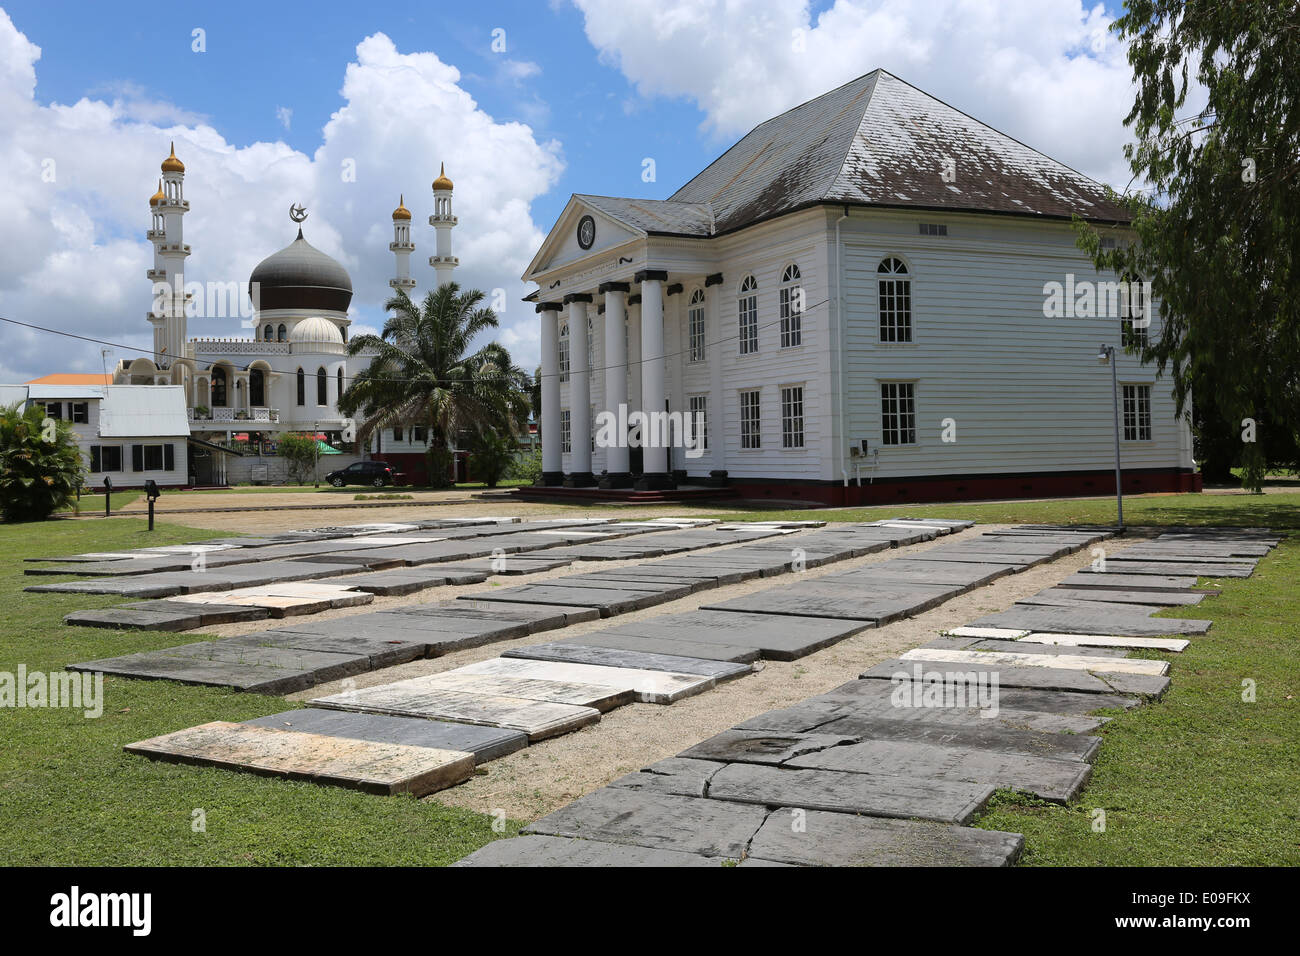 Islamic mosque (left) and jewish synagogue standing side by side in Paramaribo, capital of Suriname, Latin America Stock Photo